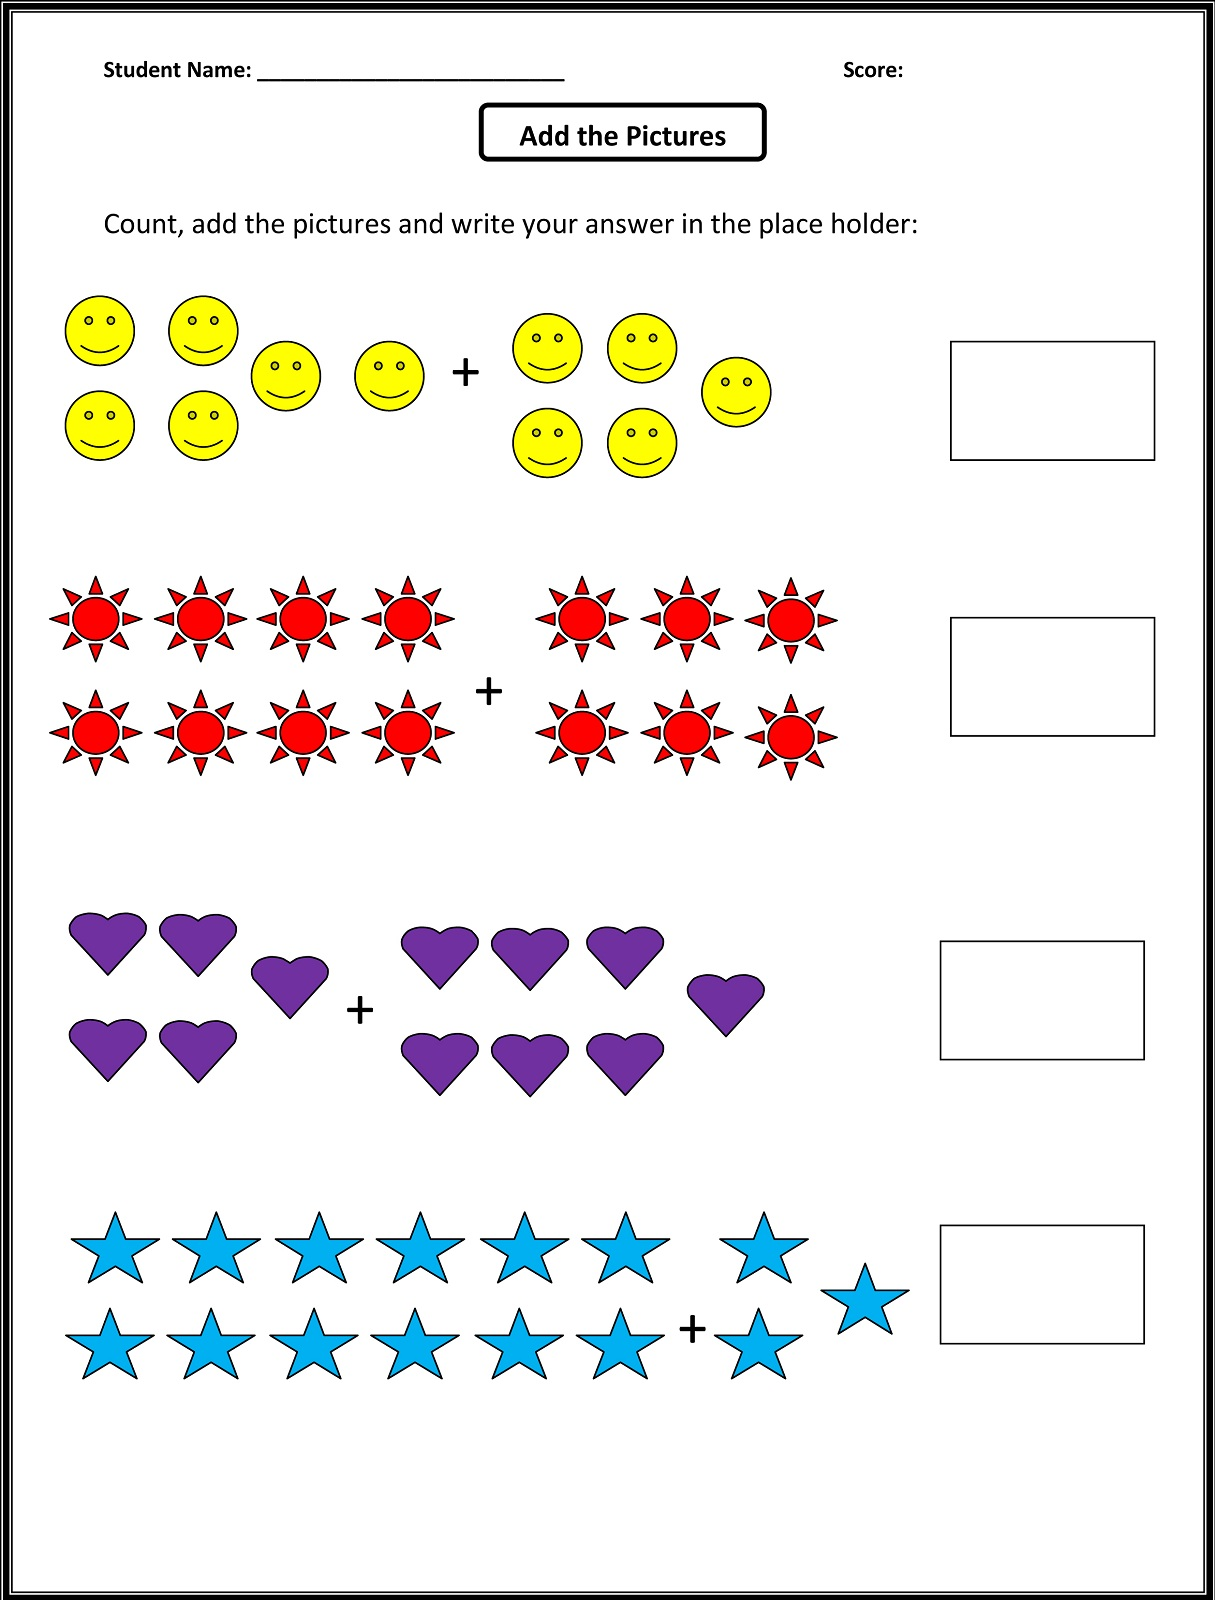 Math color worksheets for 1st grade - Image Via Mathworksheets4kids Com